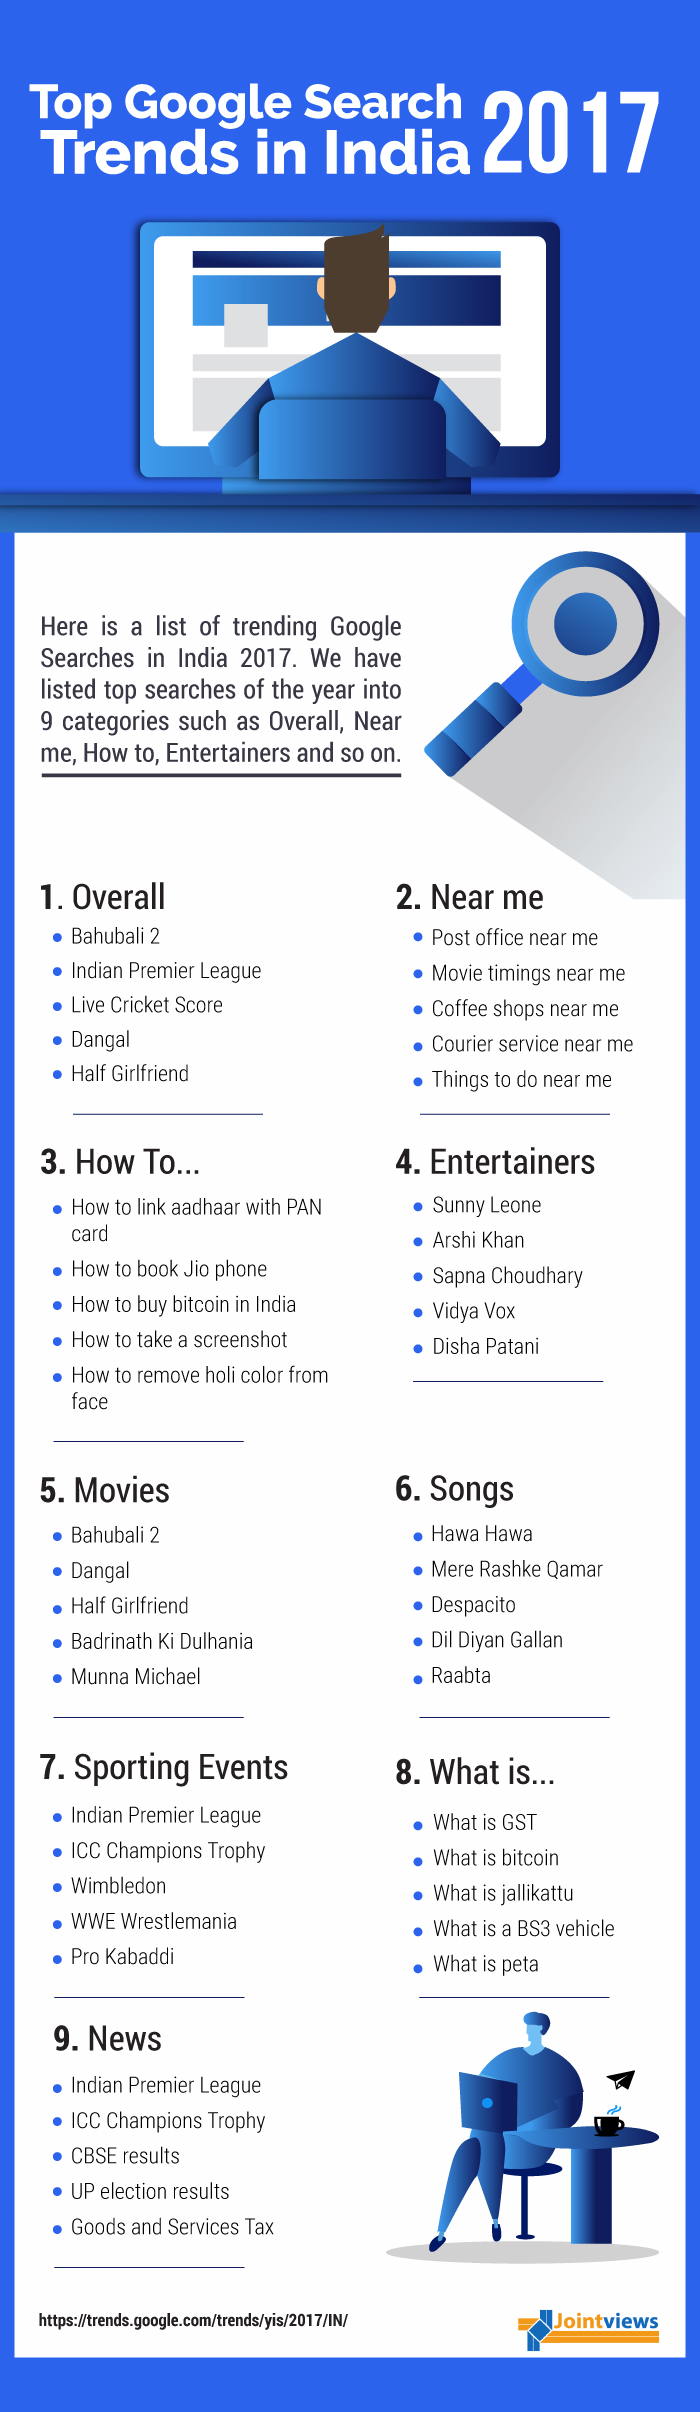 top google search trends in india 2017 infographic